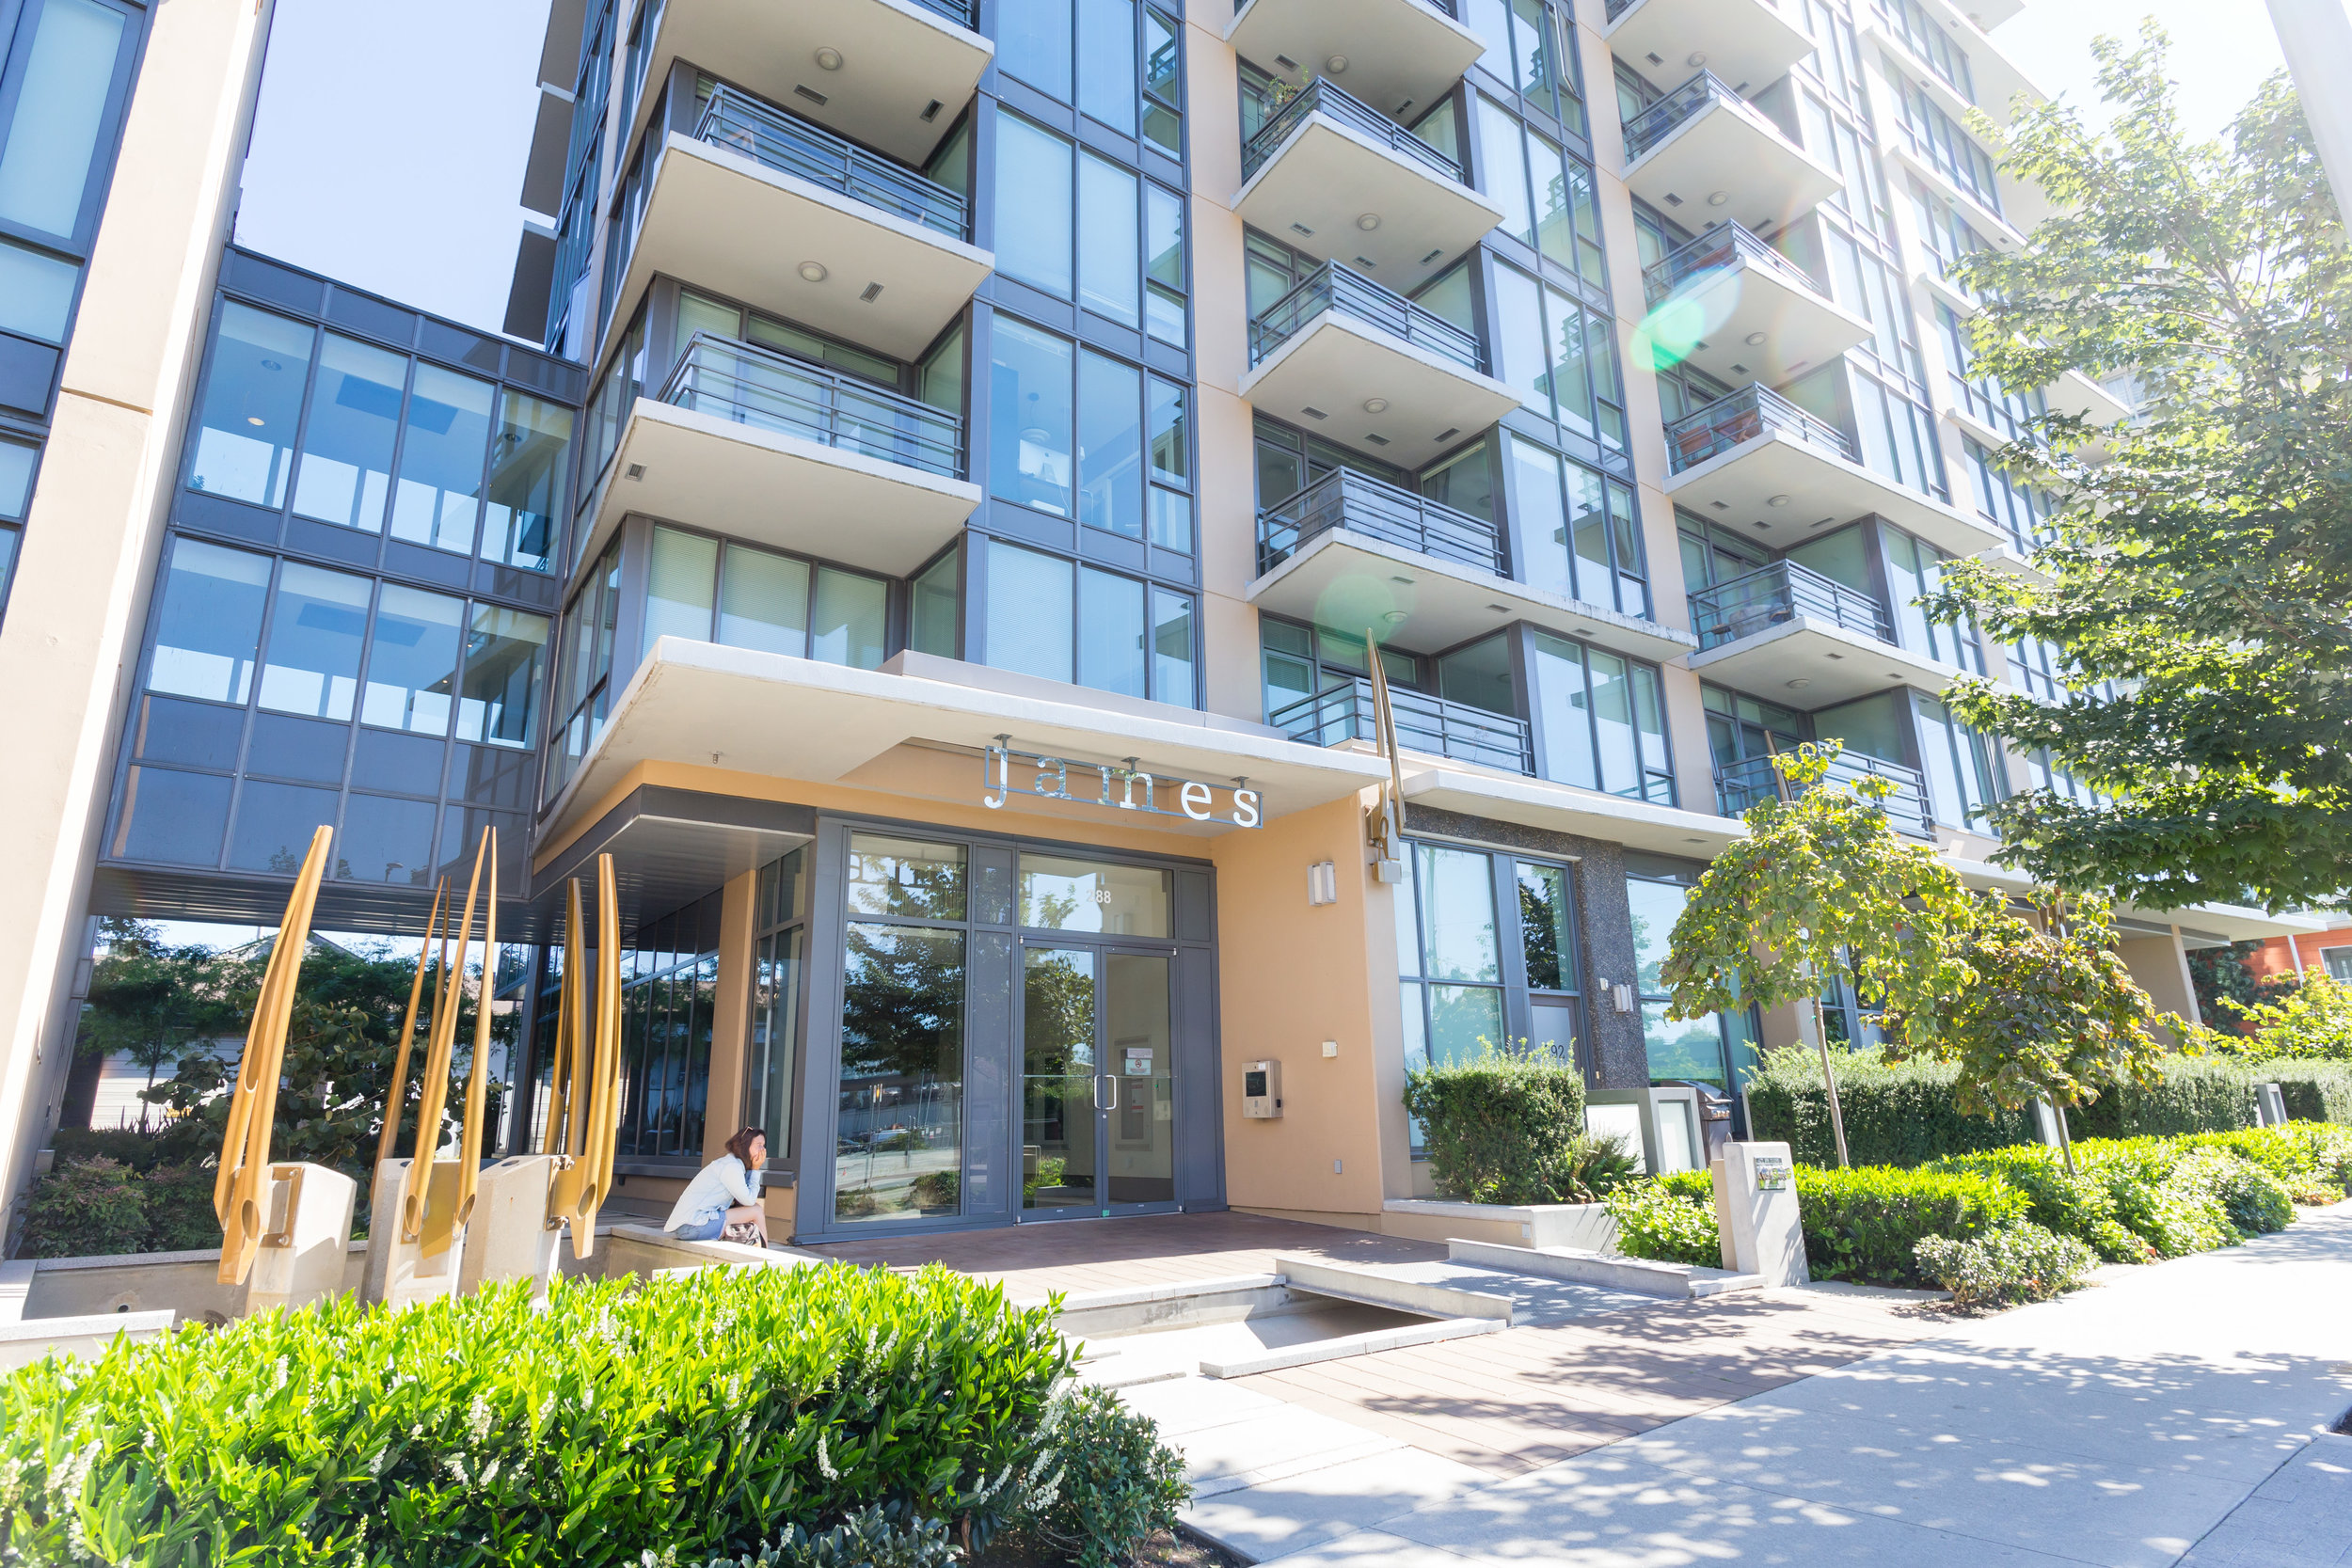 James by Cressey - #809-288 West 1st Avenue(SOLD)$1,029,000 | 2 Bed + Den | 2 Bath Ensuites